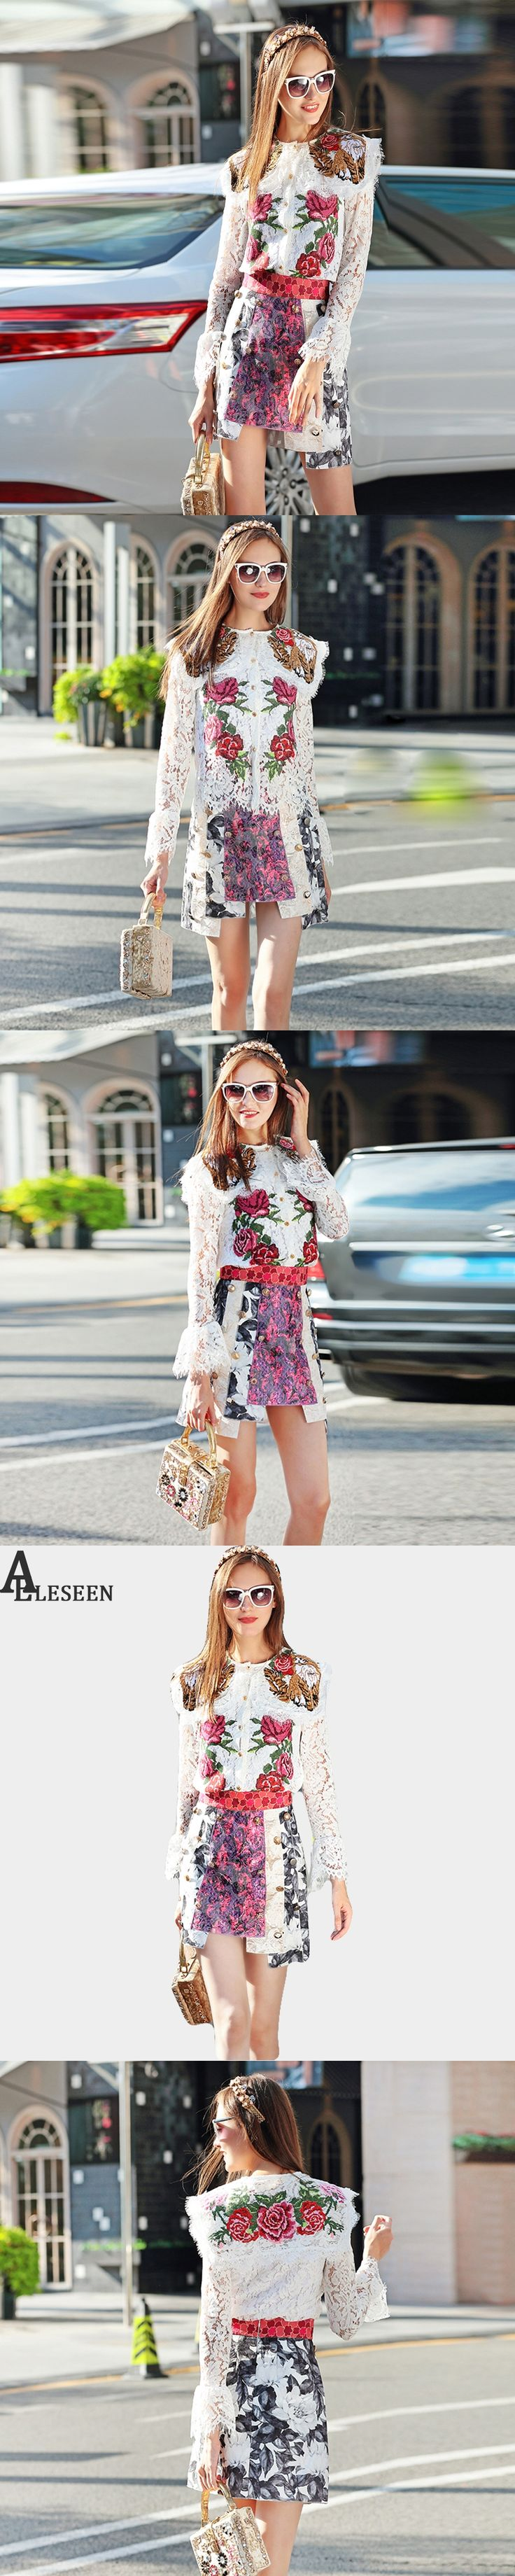 Autumn 2 Piece Set 2017 New Full Flare Sleeve Lace Embroidery Patchwork Elegant Top + Irregular Flowers Print Mini Skirts Suit